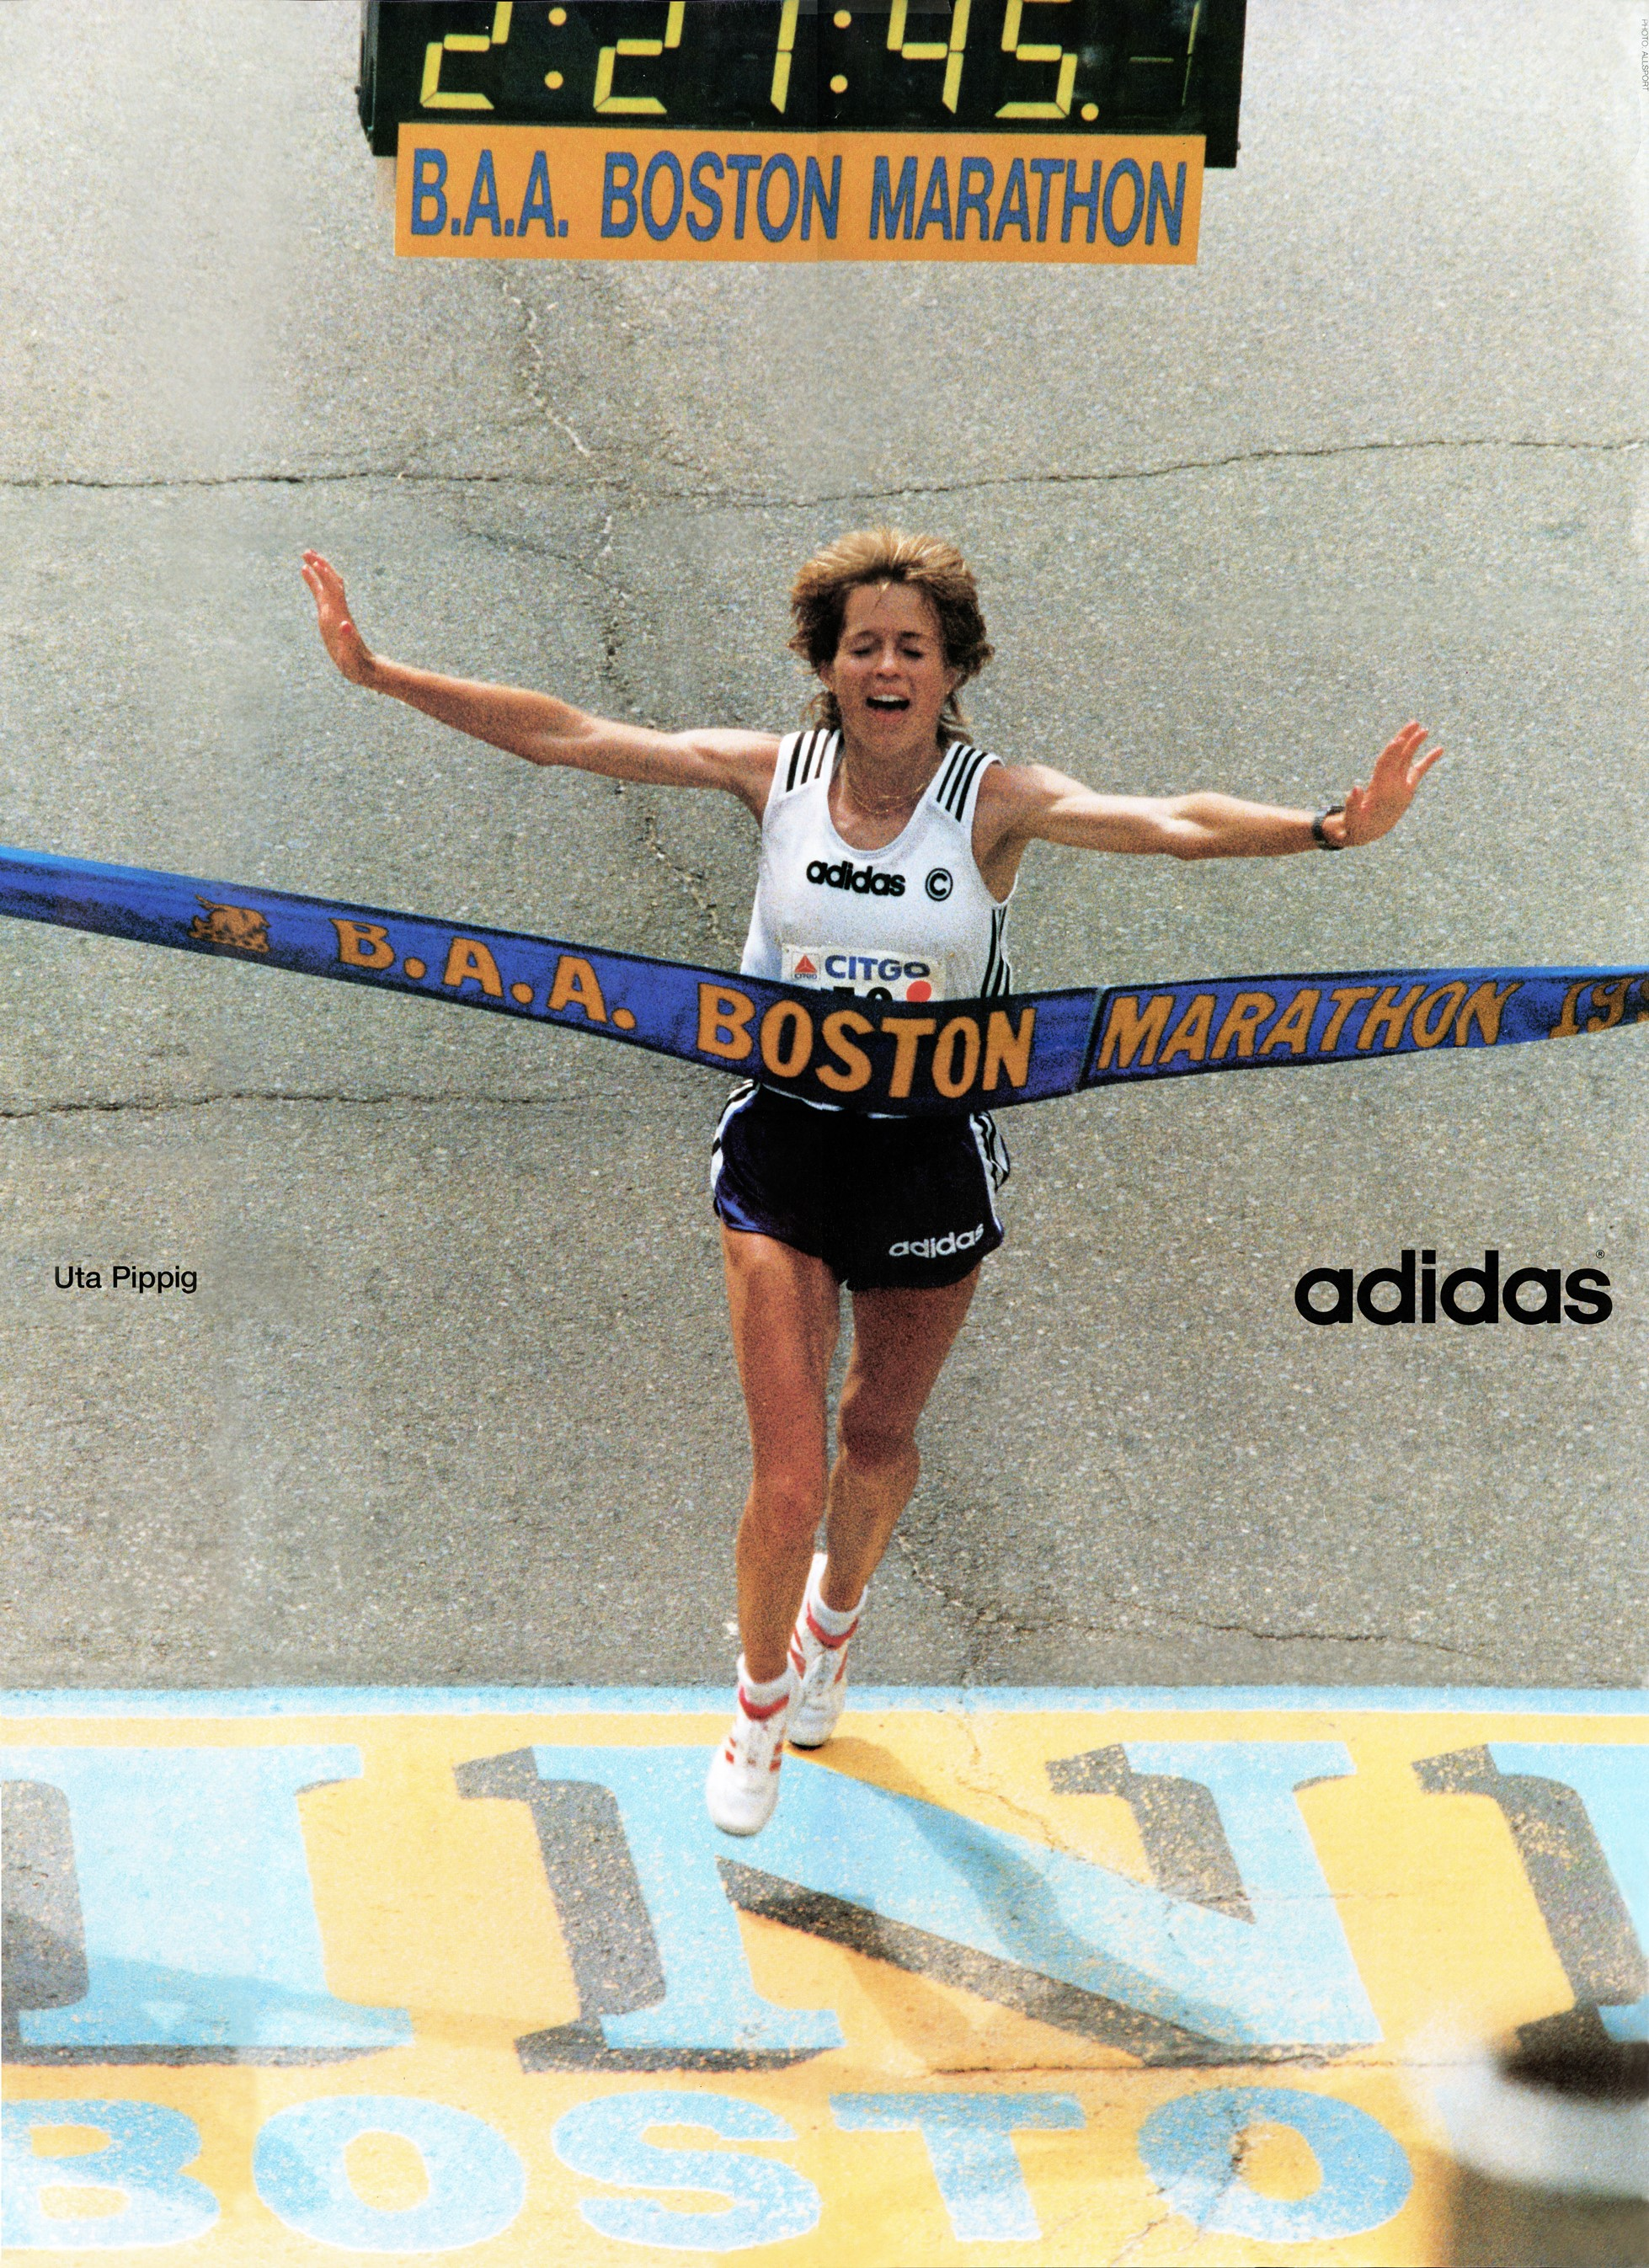 Celebration of the 100th running of the Boston Marathon. Largest turnout of the race ever. Uta Pippig becomes first woman to win it three consecutive times.